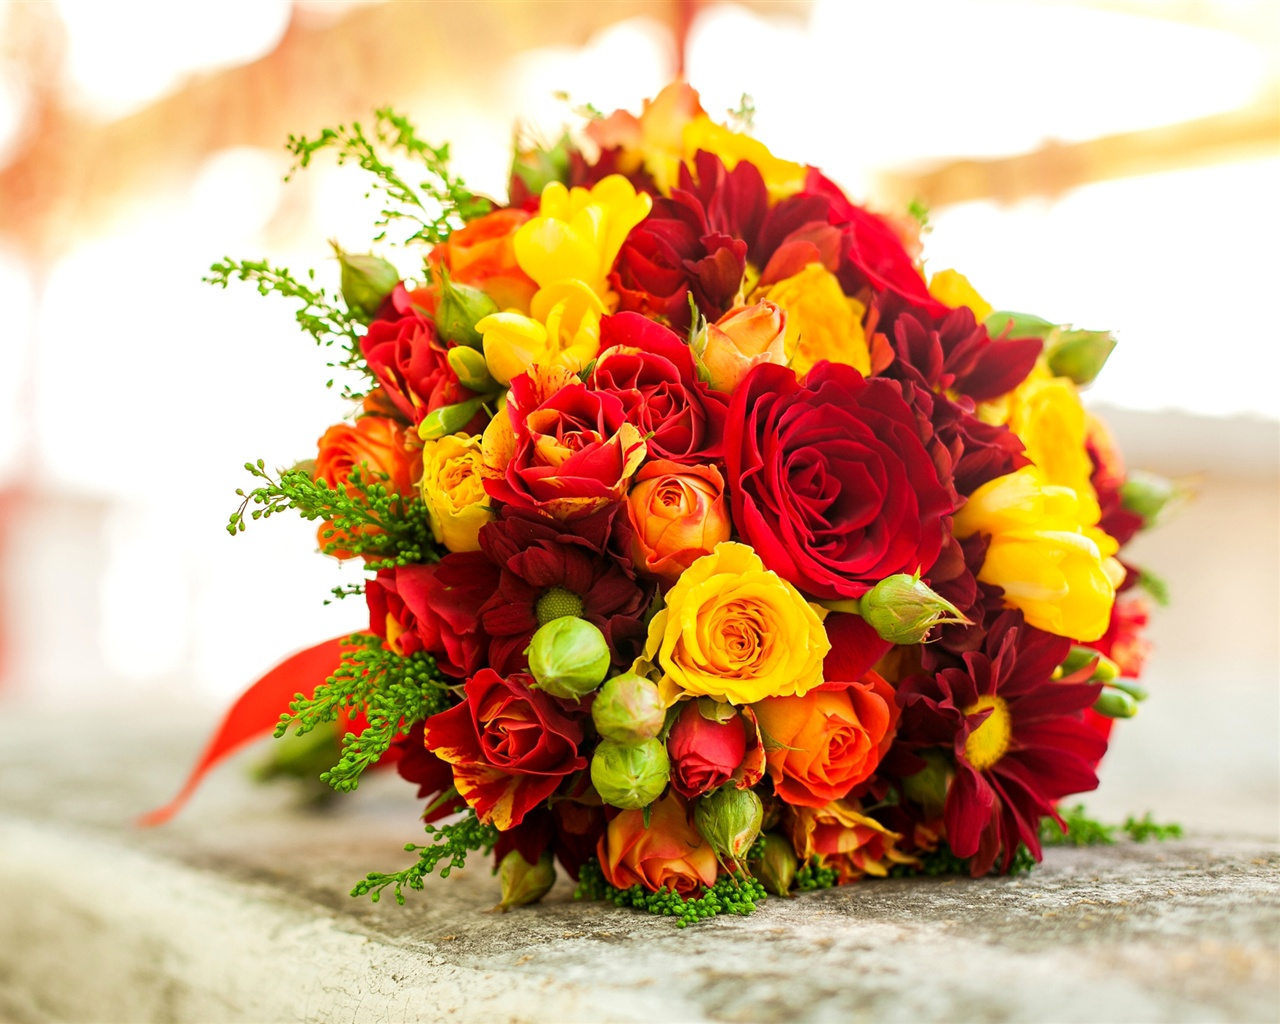 Bright Wallpapers For Iphone 6 Wallpaper Bouquet Flowers Red Yellow Rose 2560x1600 Hd